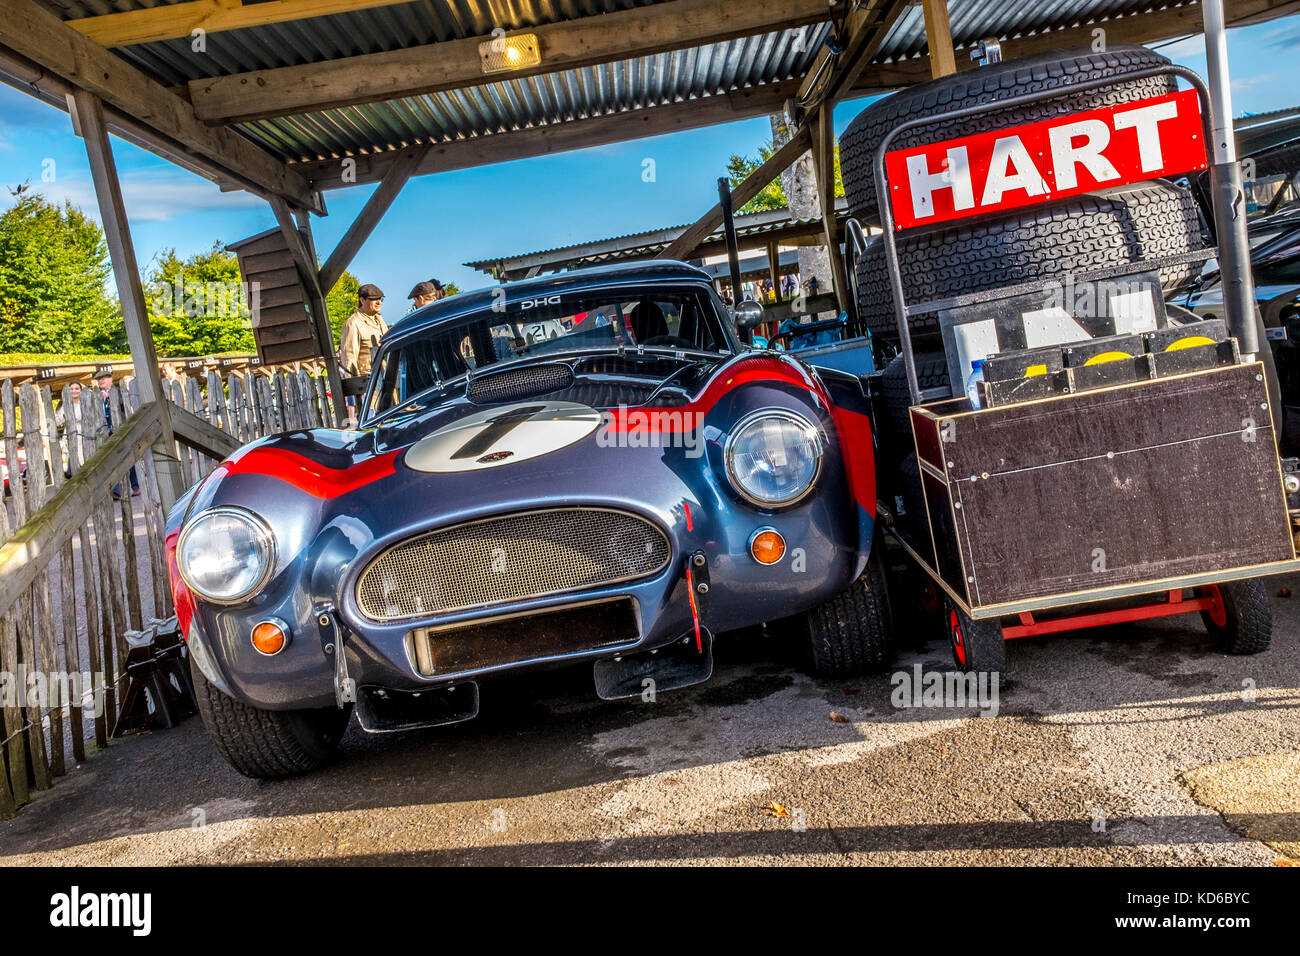 David and Oliver Hart's 1963 AC Cobra in the paddock garage at the 2017 Goodwood Revival, Sussex, UK. RAC TT - Stock Image